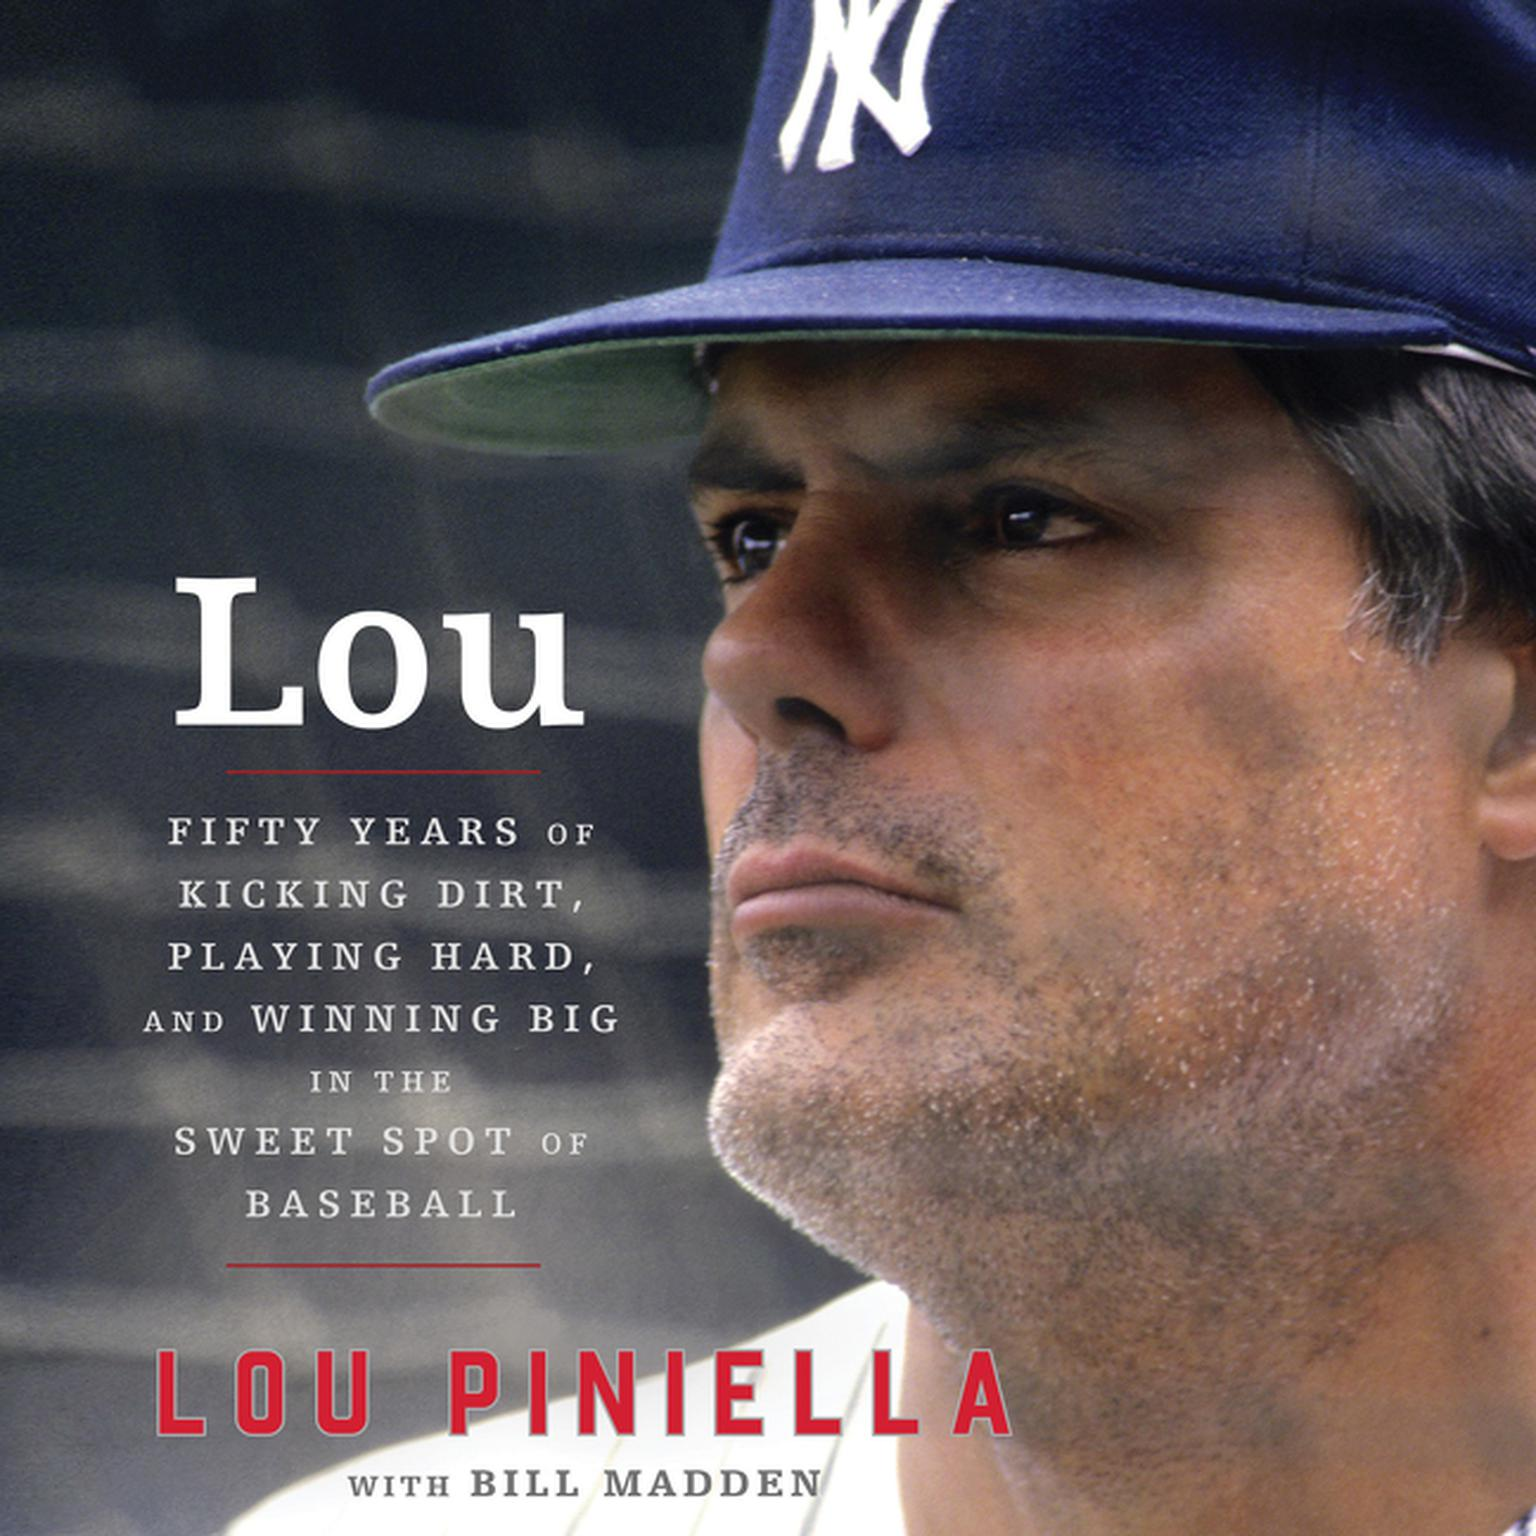 Printable Lou: Fifty Years of Kicking Dirt, Playing Hard, and Winning Big in the Sweet Spot of Baseball Audiobook Cover Art